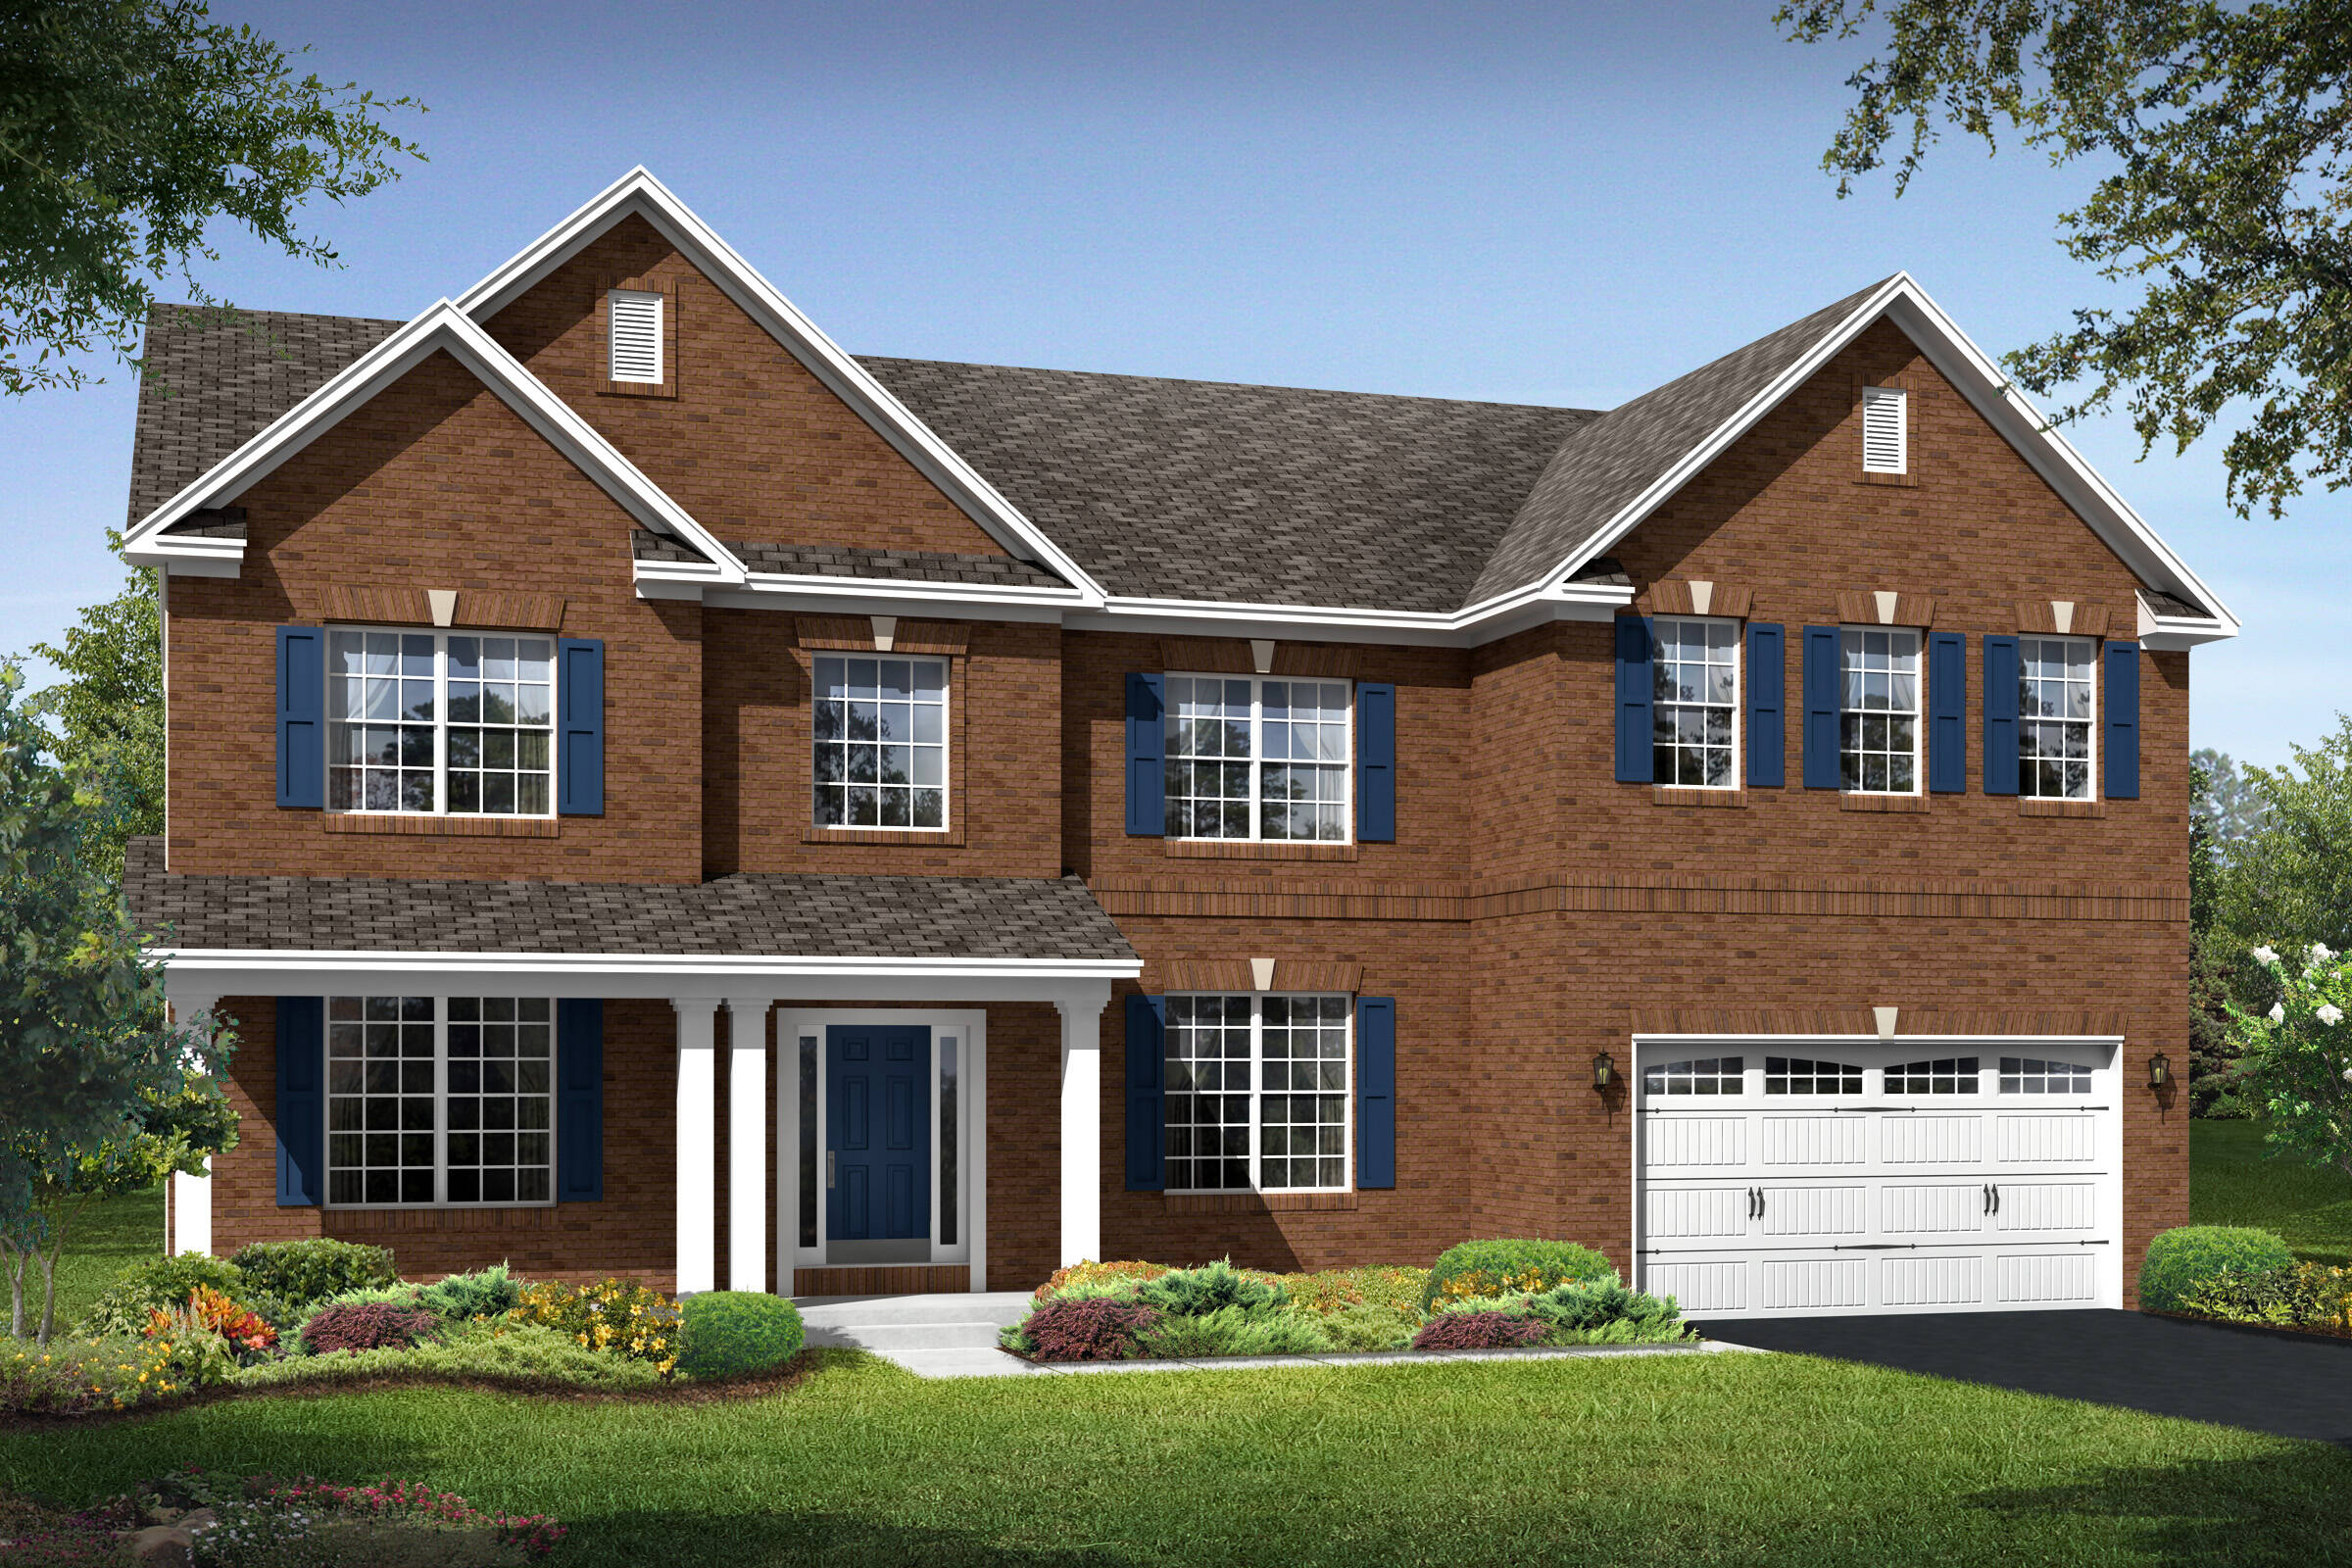 colorado bb new homes at magness farm in maryland